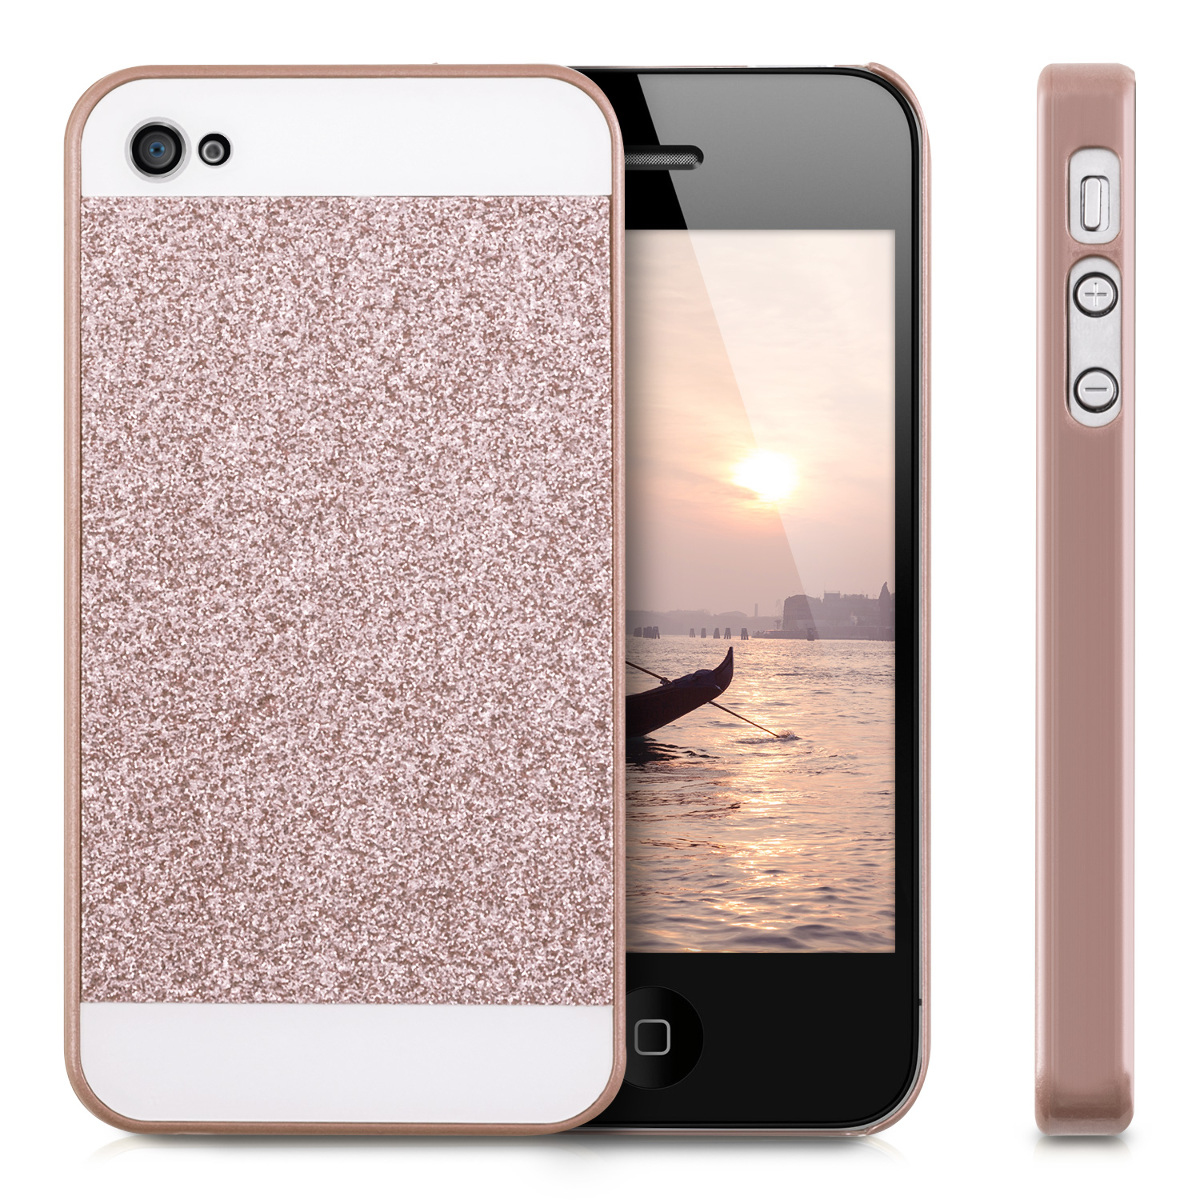 iphone 4 rose gold cover glitter rectangle for apple iphone 4 4s 6210